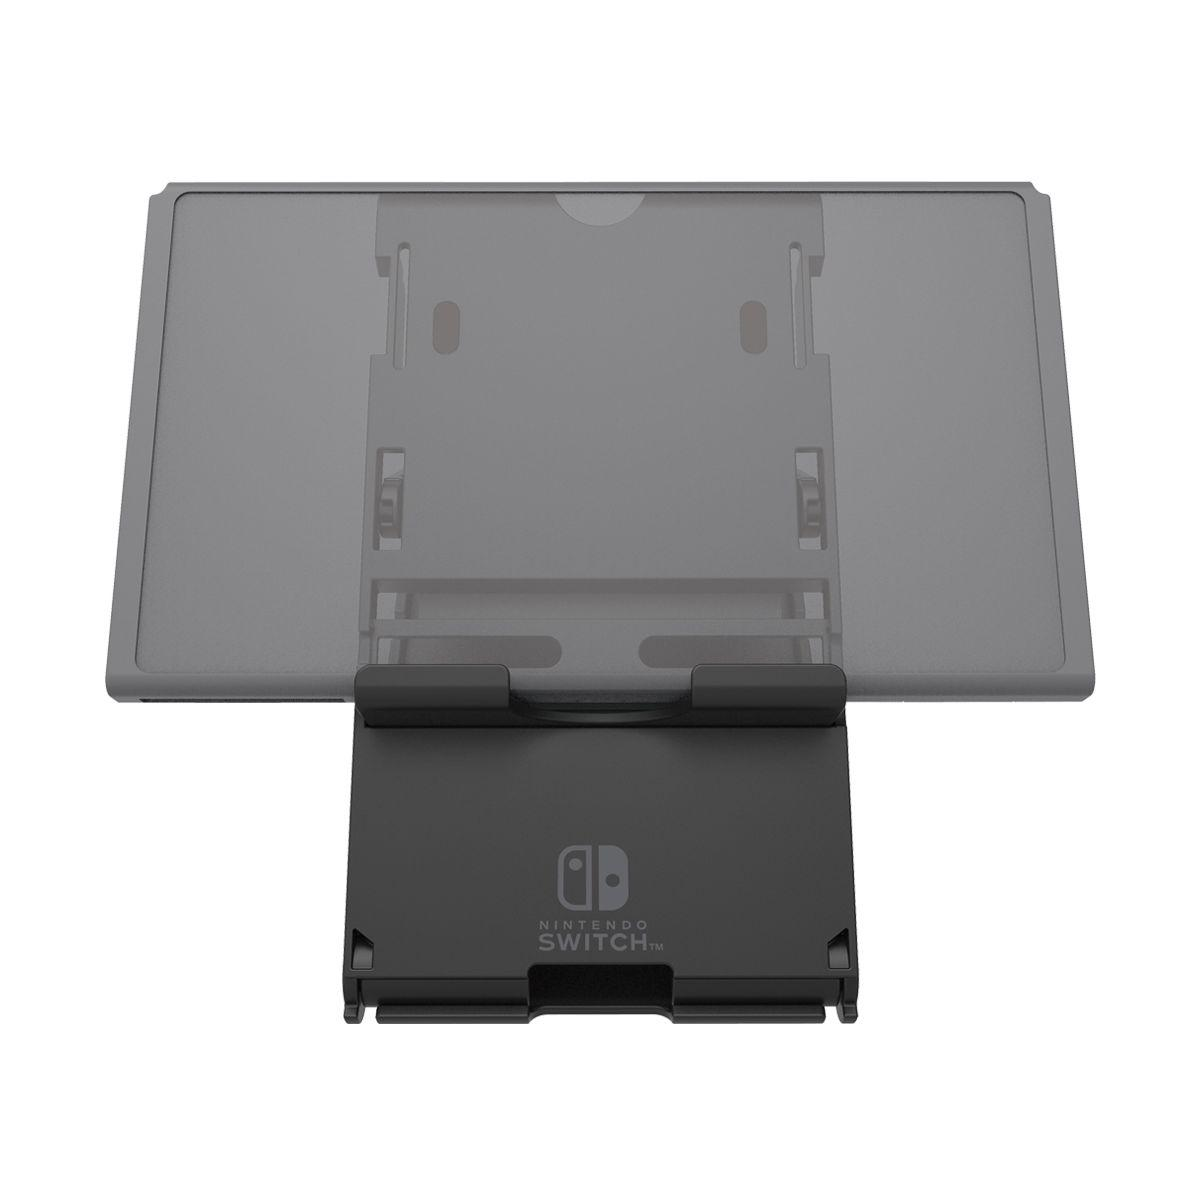 Acc. hori support-chargeur pour console (photo)